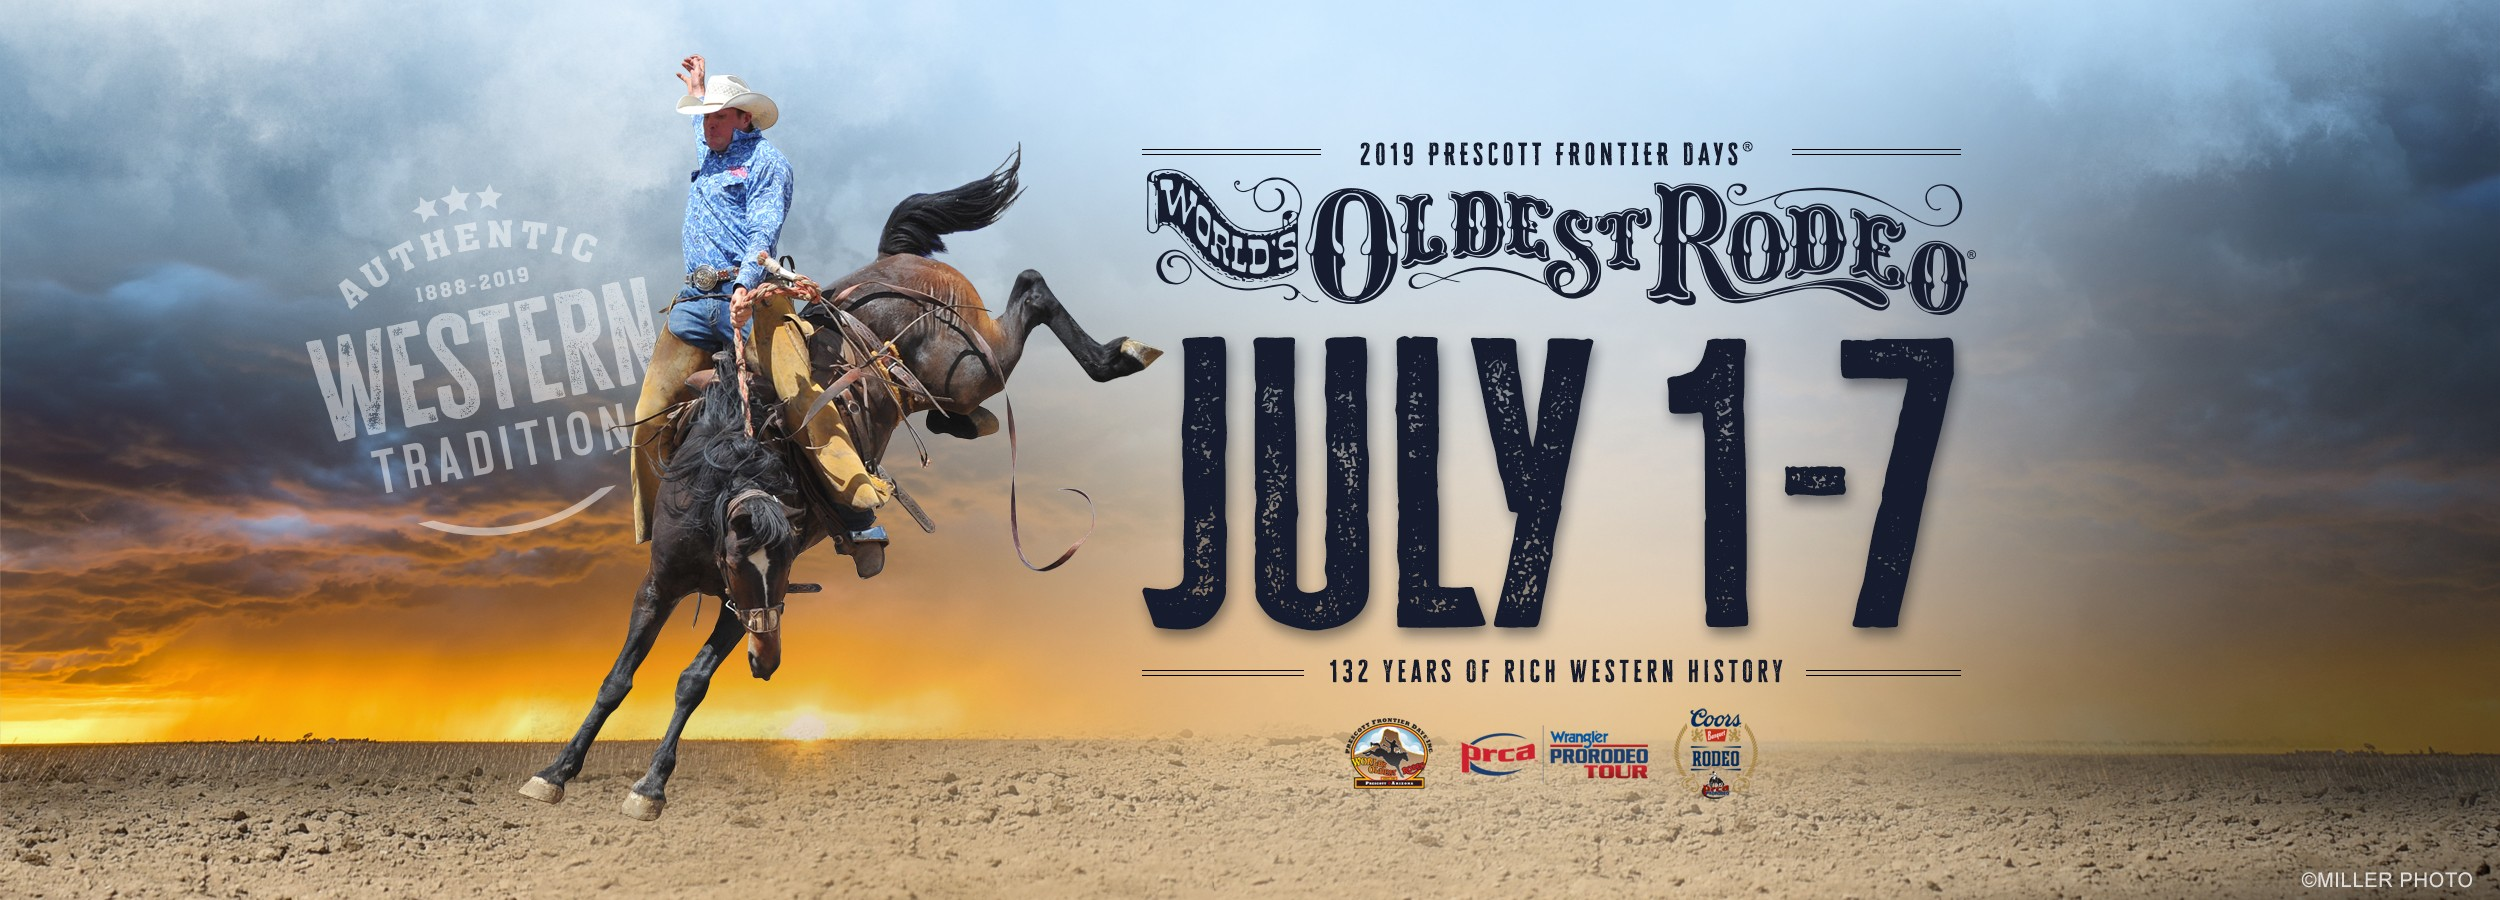 2019 Prescott Frontier Days World's Oldest Rodeo